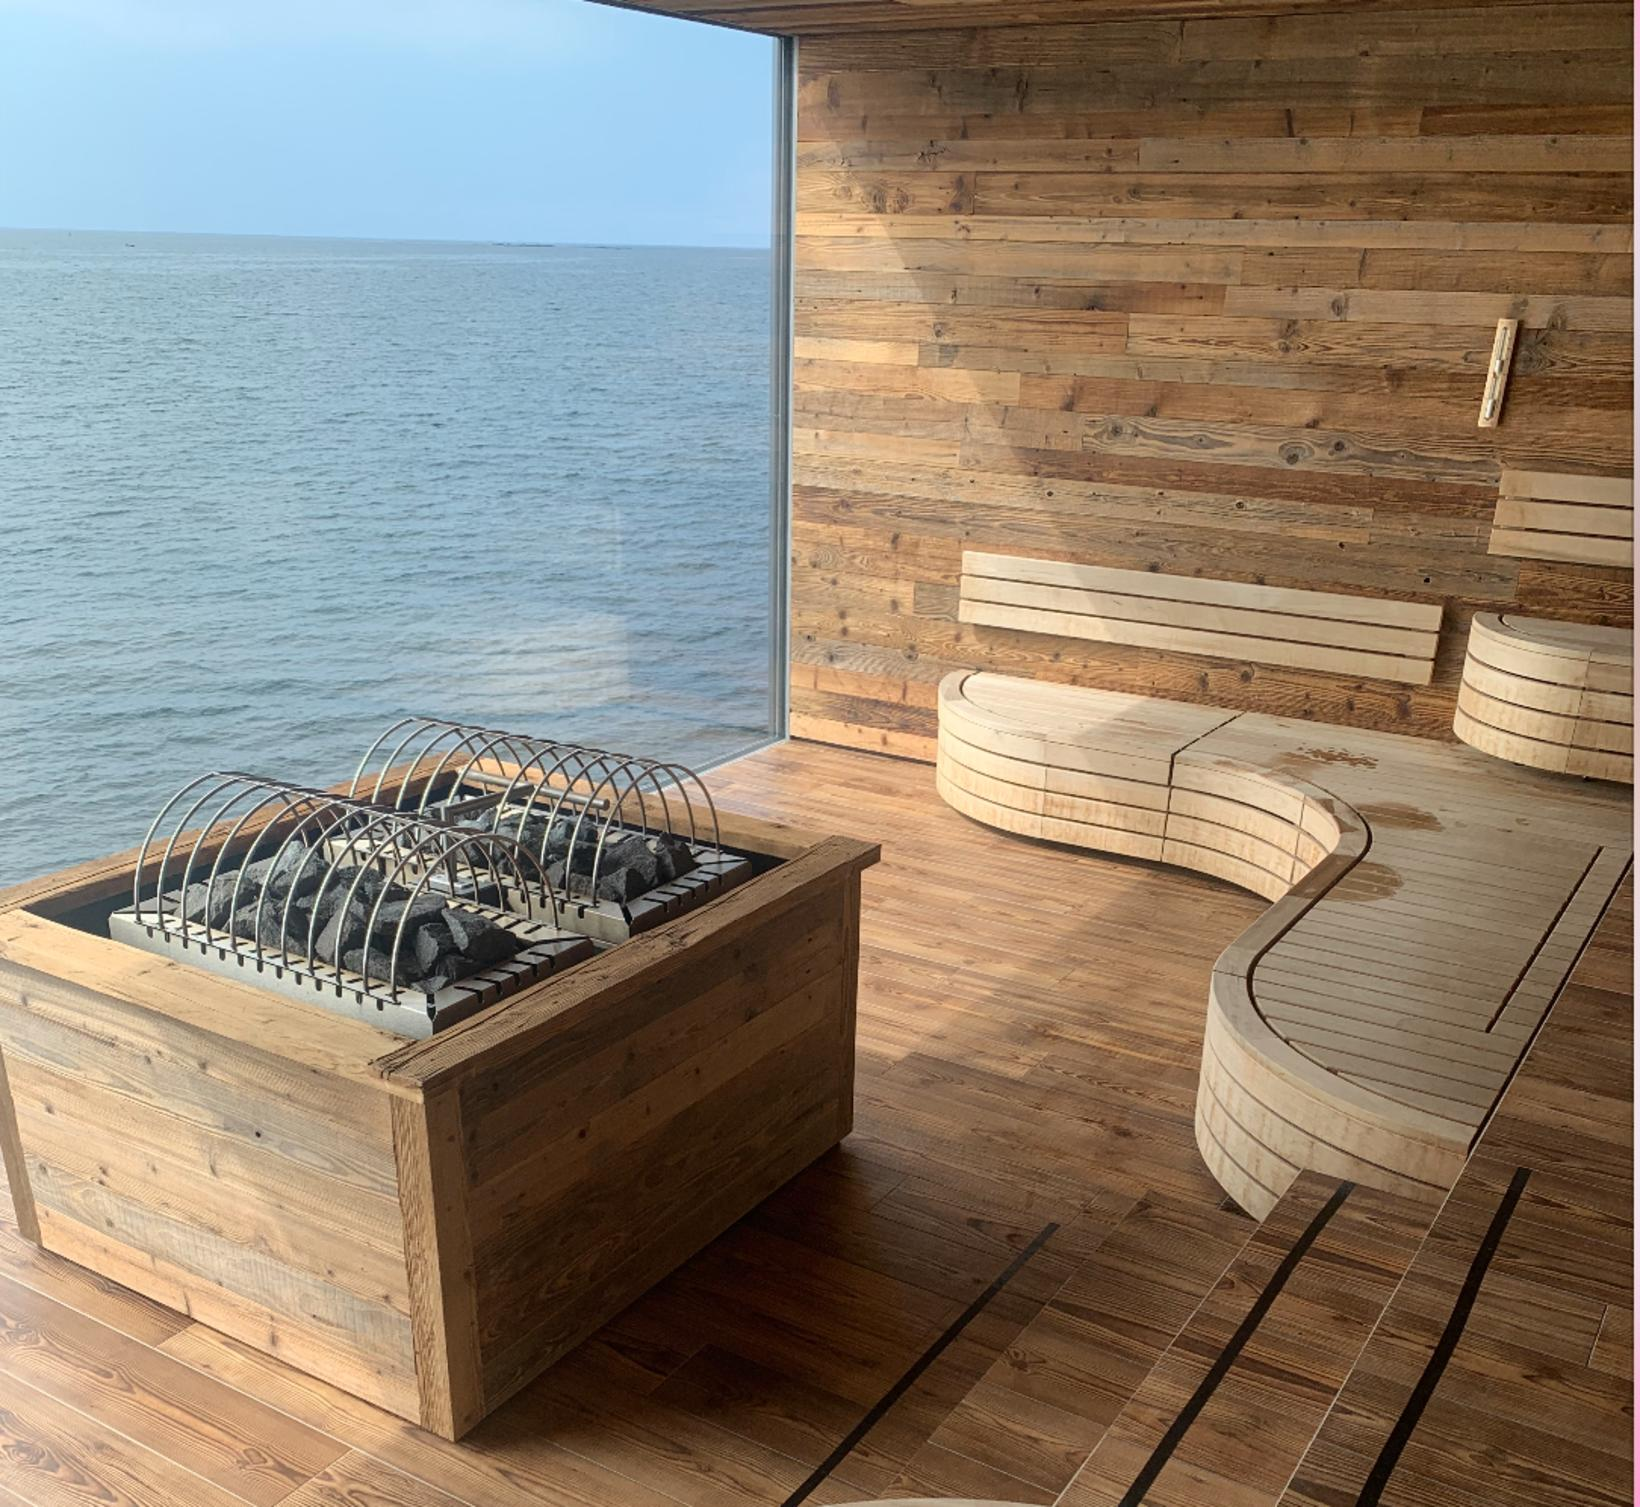 The sauna with sea view through one of the largest …